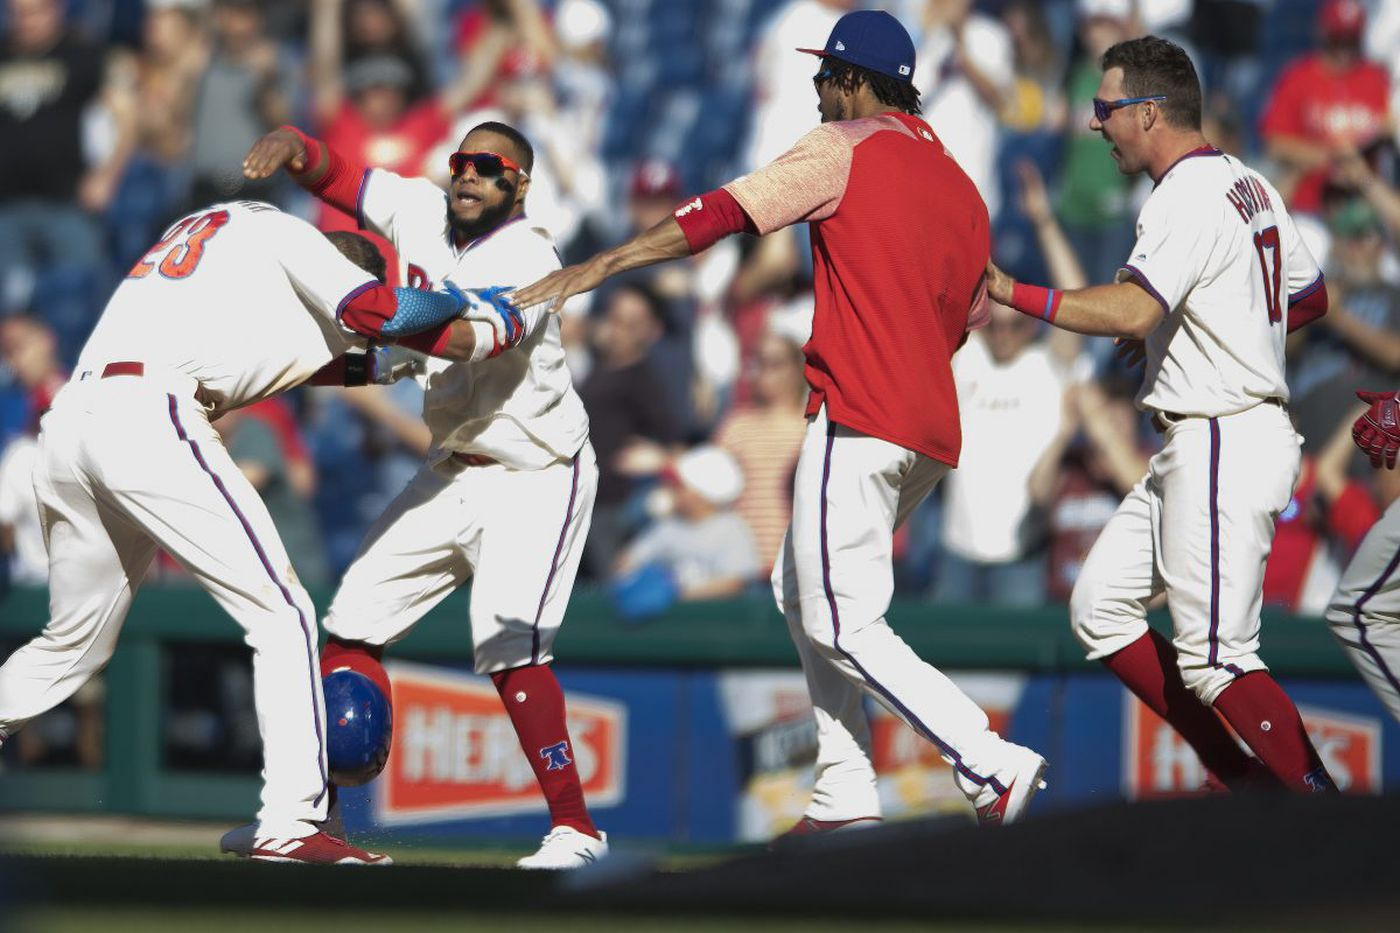 Phillies sweep Pirates on Aaron Altherr's walk-off single in 11th inning